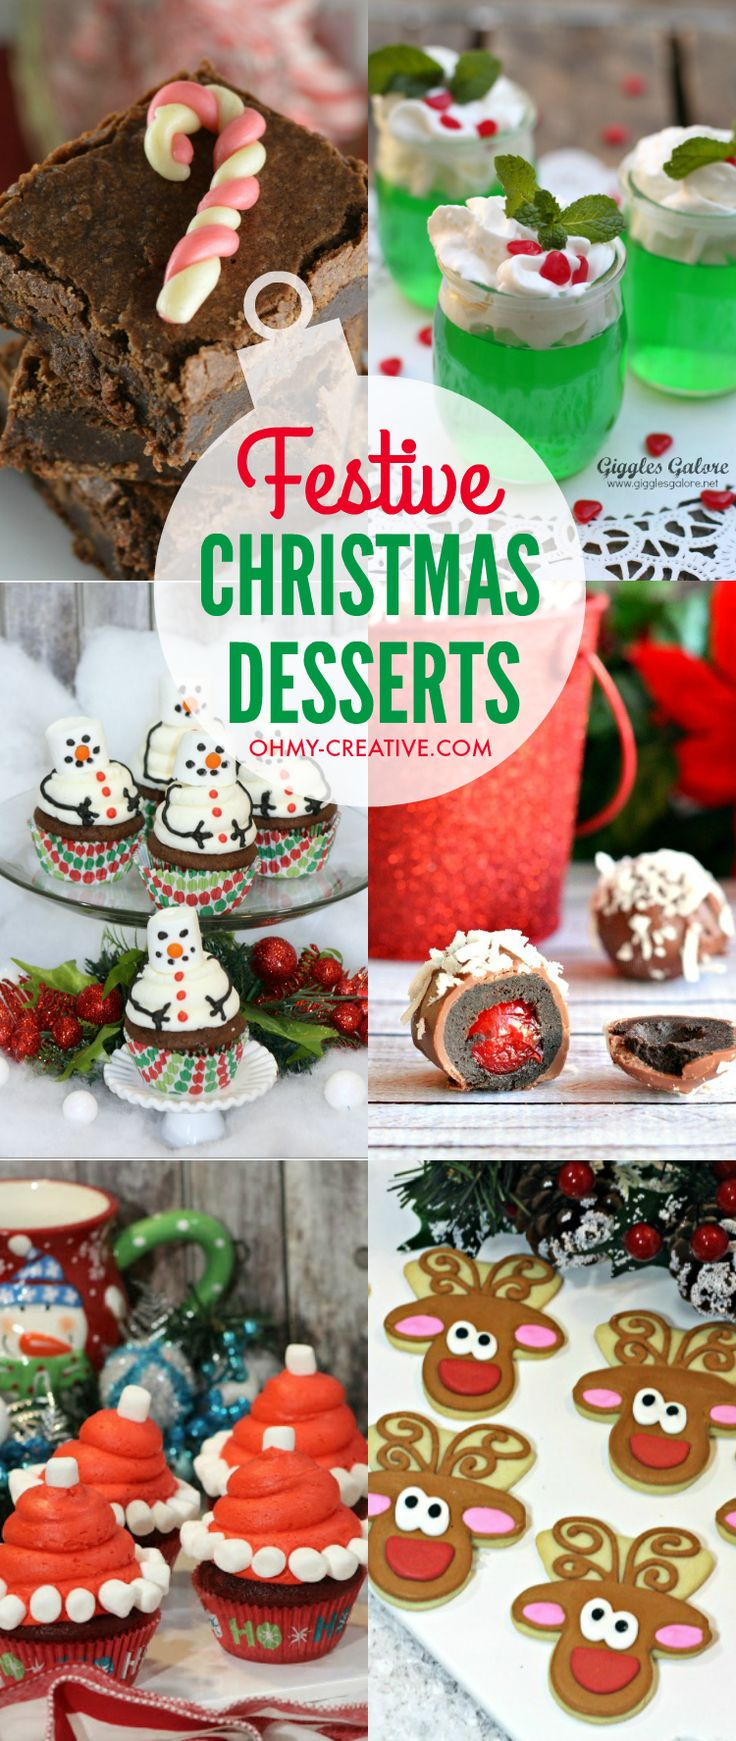 These Festive Christmas Desserts would be perfect for Christmas get-togethers and parties. Make and take them to family events or the office party!